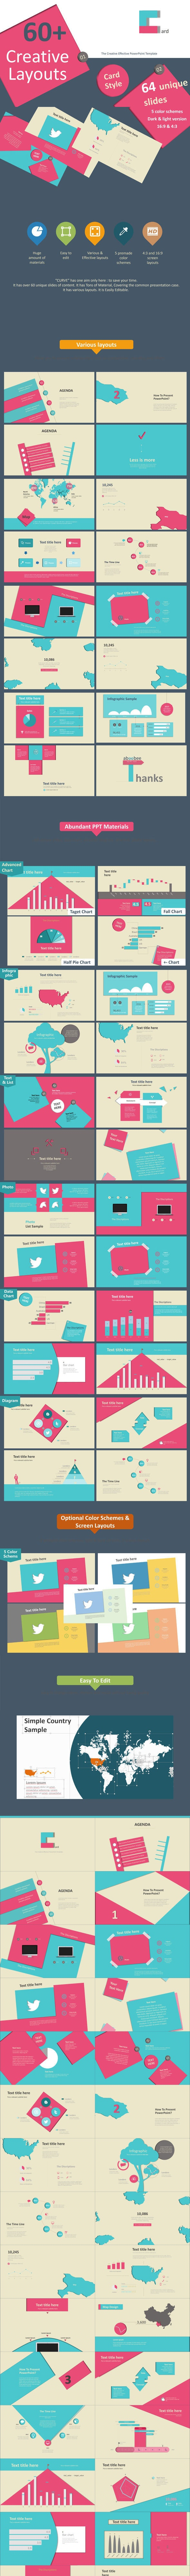 Card Creative Layouts PowerPoint Template - Creative PowerPoint Templates